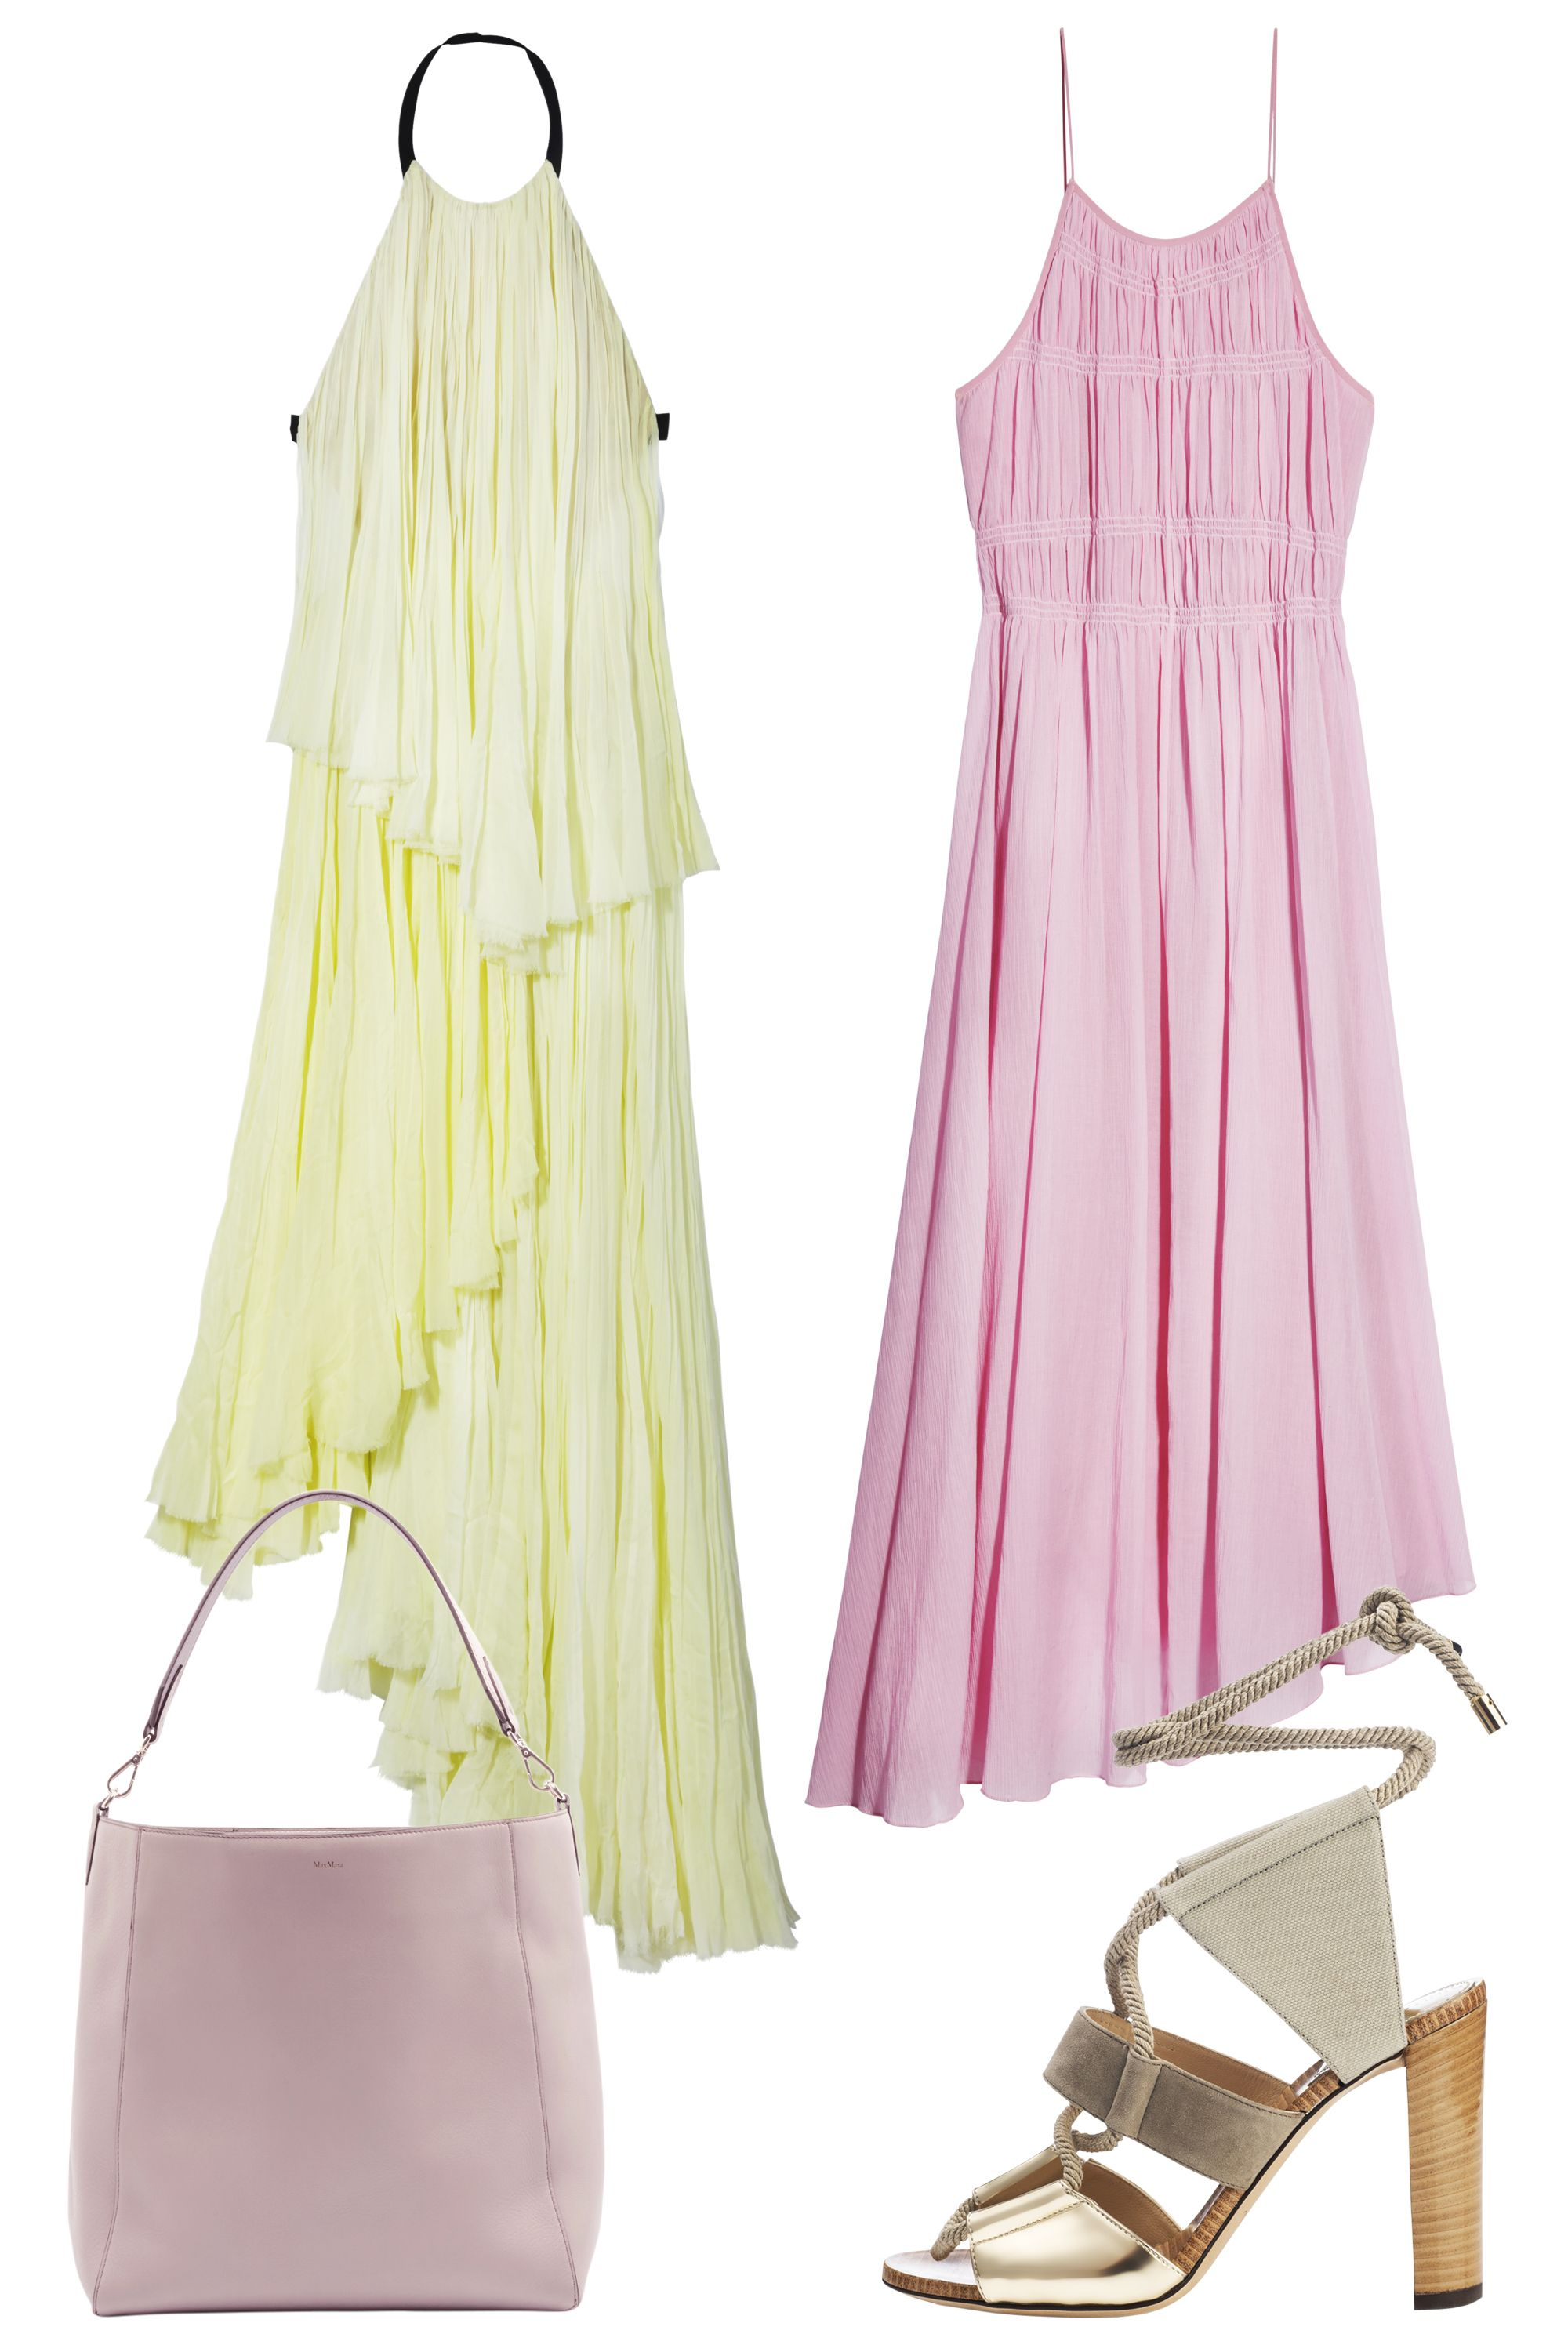 Top dresses to wear to a wedding  The Style How to Wear The New Spring Dresses  Pastel Pretty